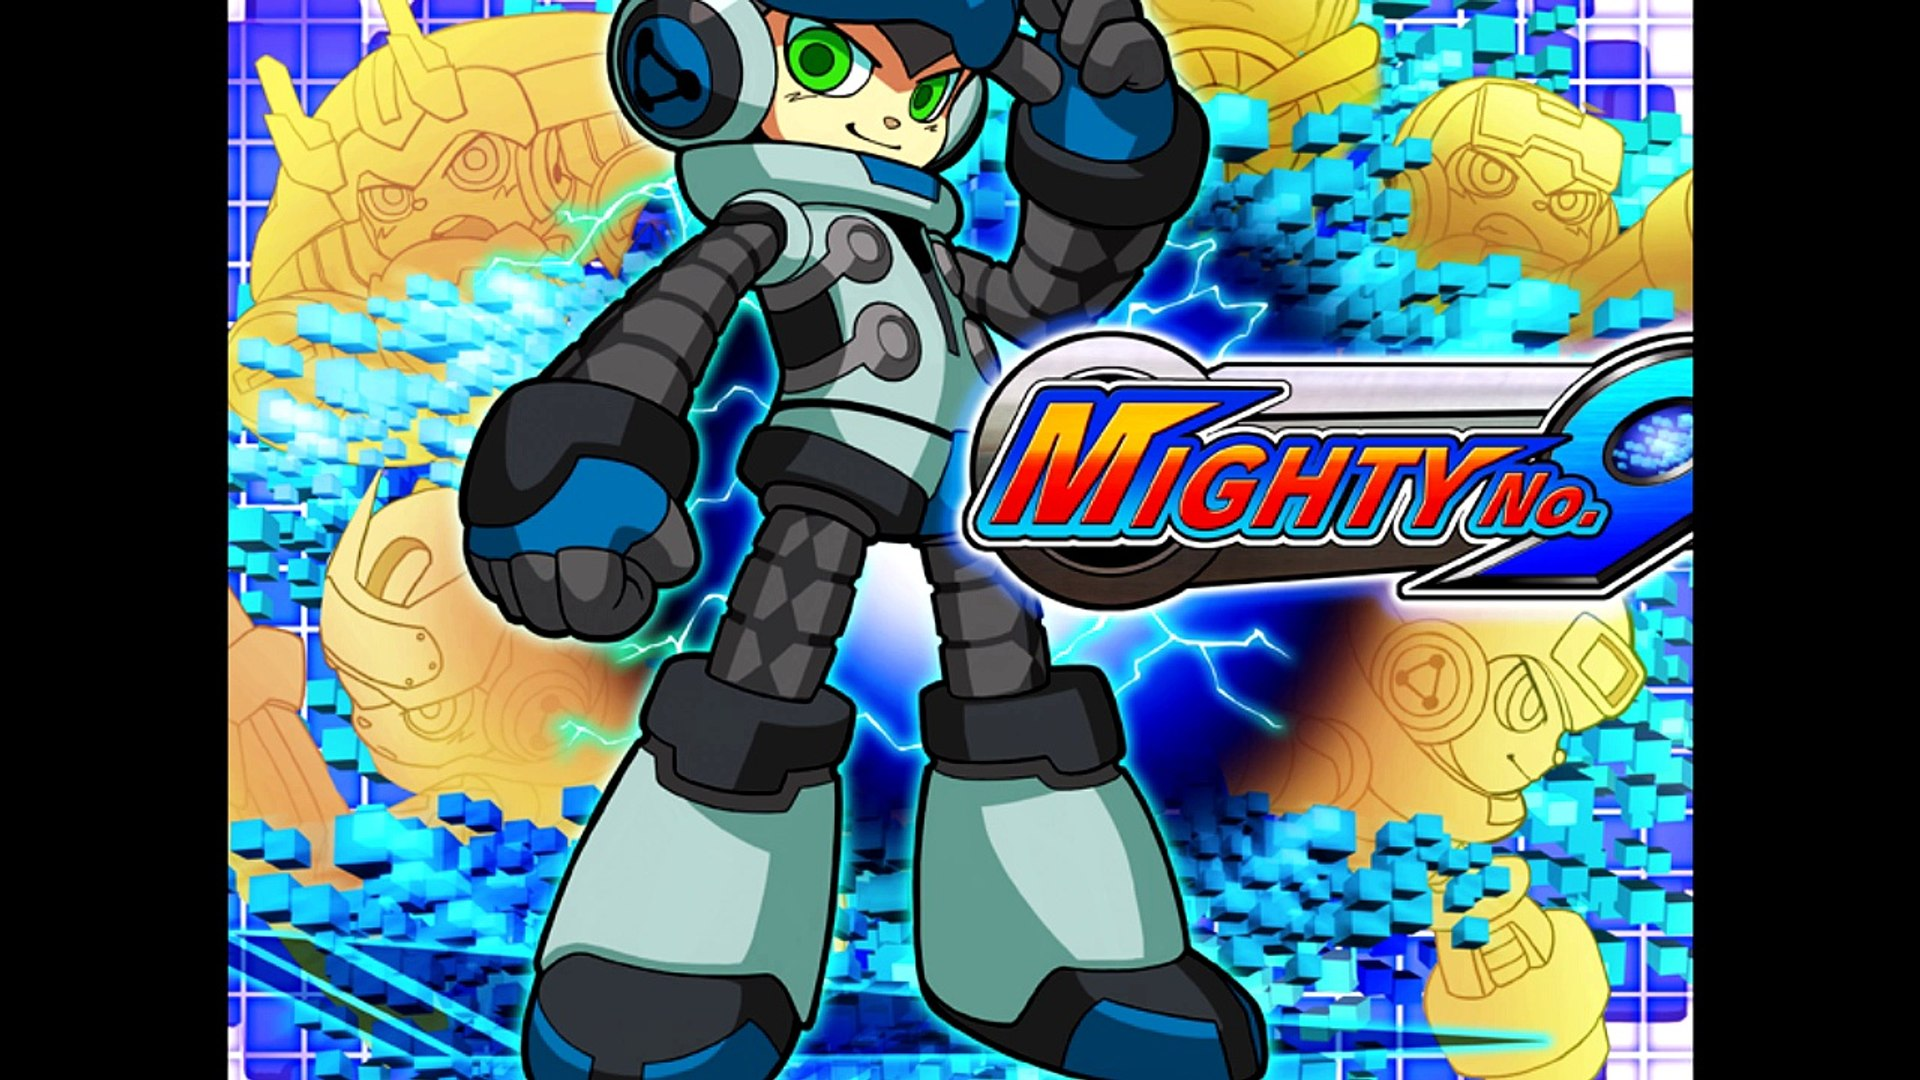 Mighty no 9 Review